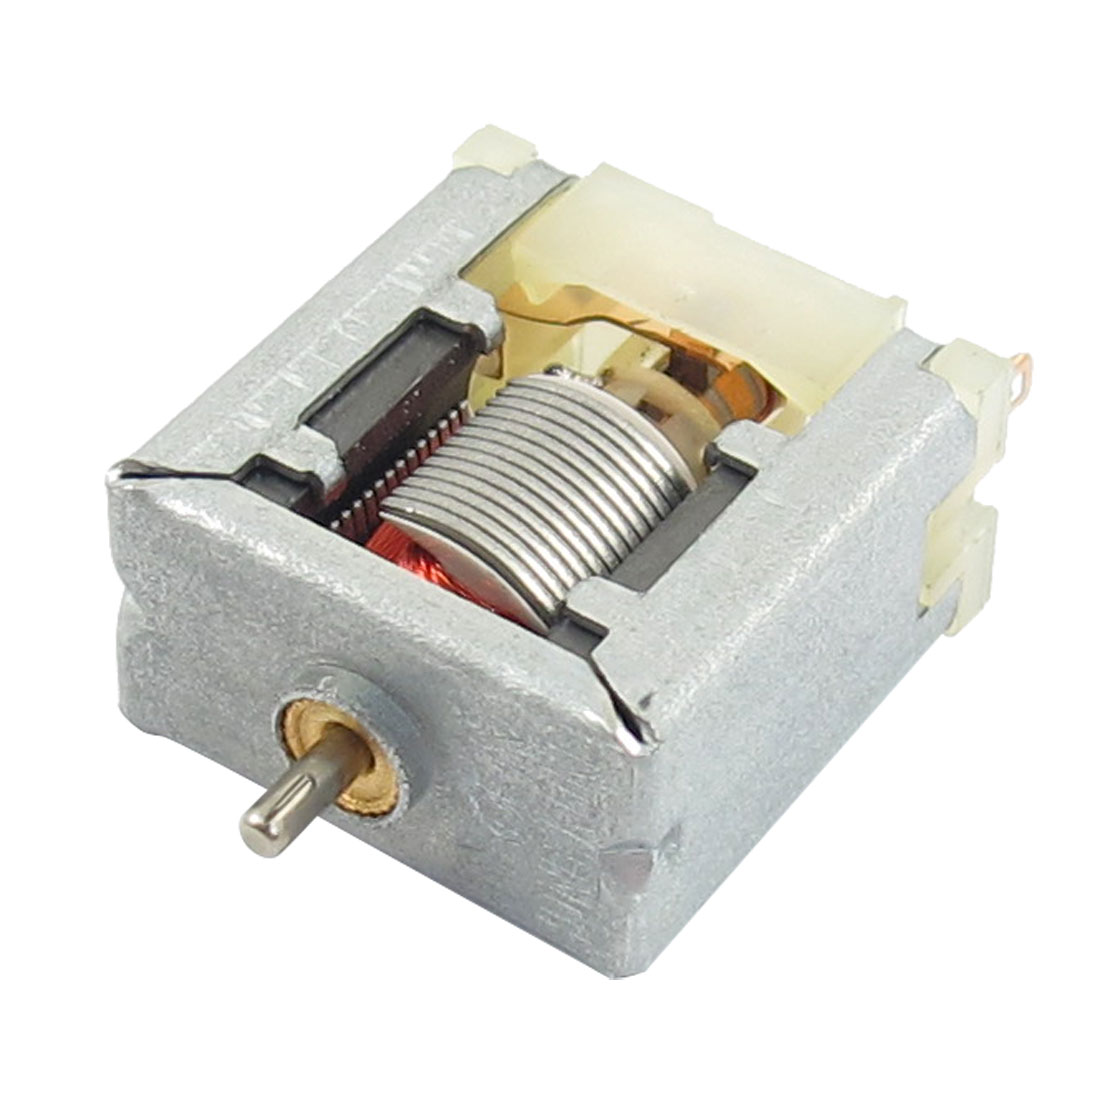 DC-3-6V-2600RPM-1-5mmx4mm-Dia-Shaft-2-Pin-2P-Gear-Motor-Replacement-Parts